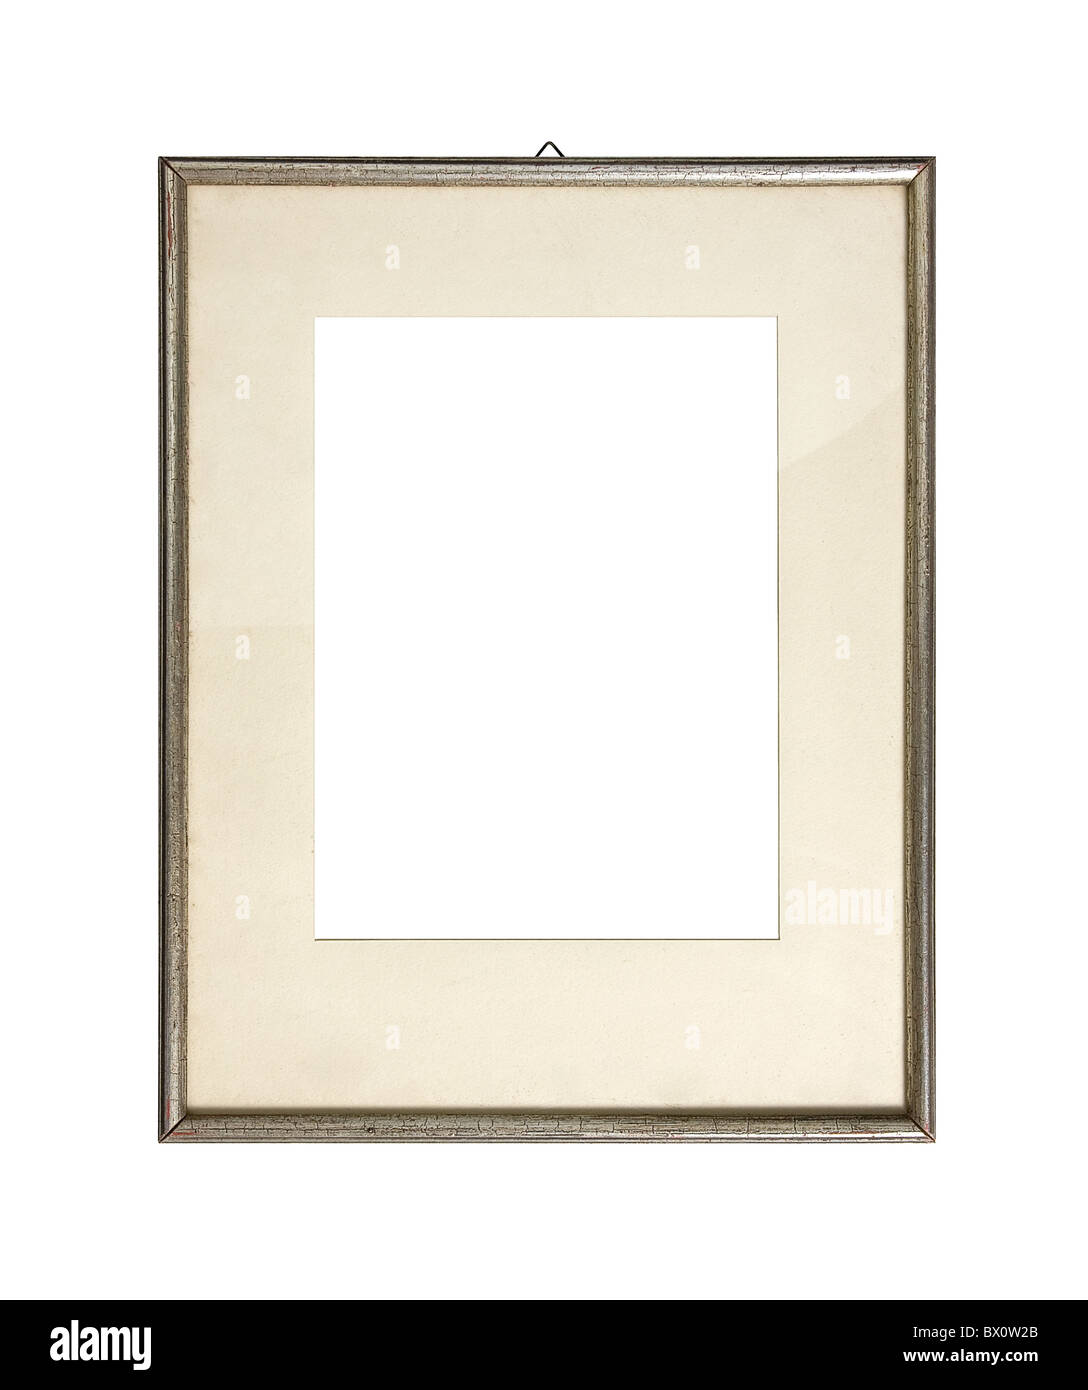 Old silver picture frame, isolated on white - Stock Image